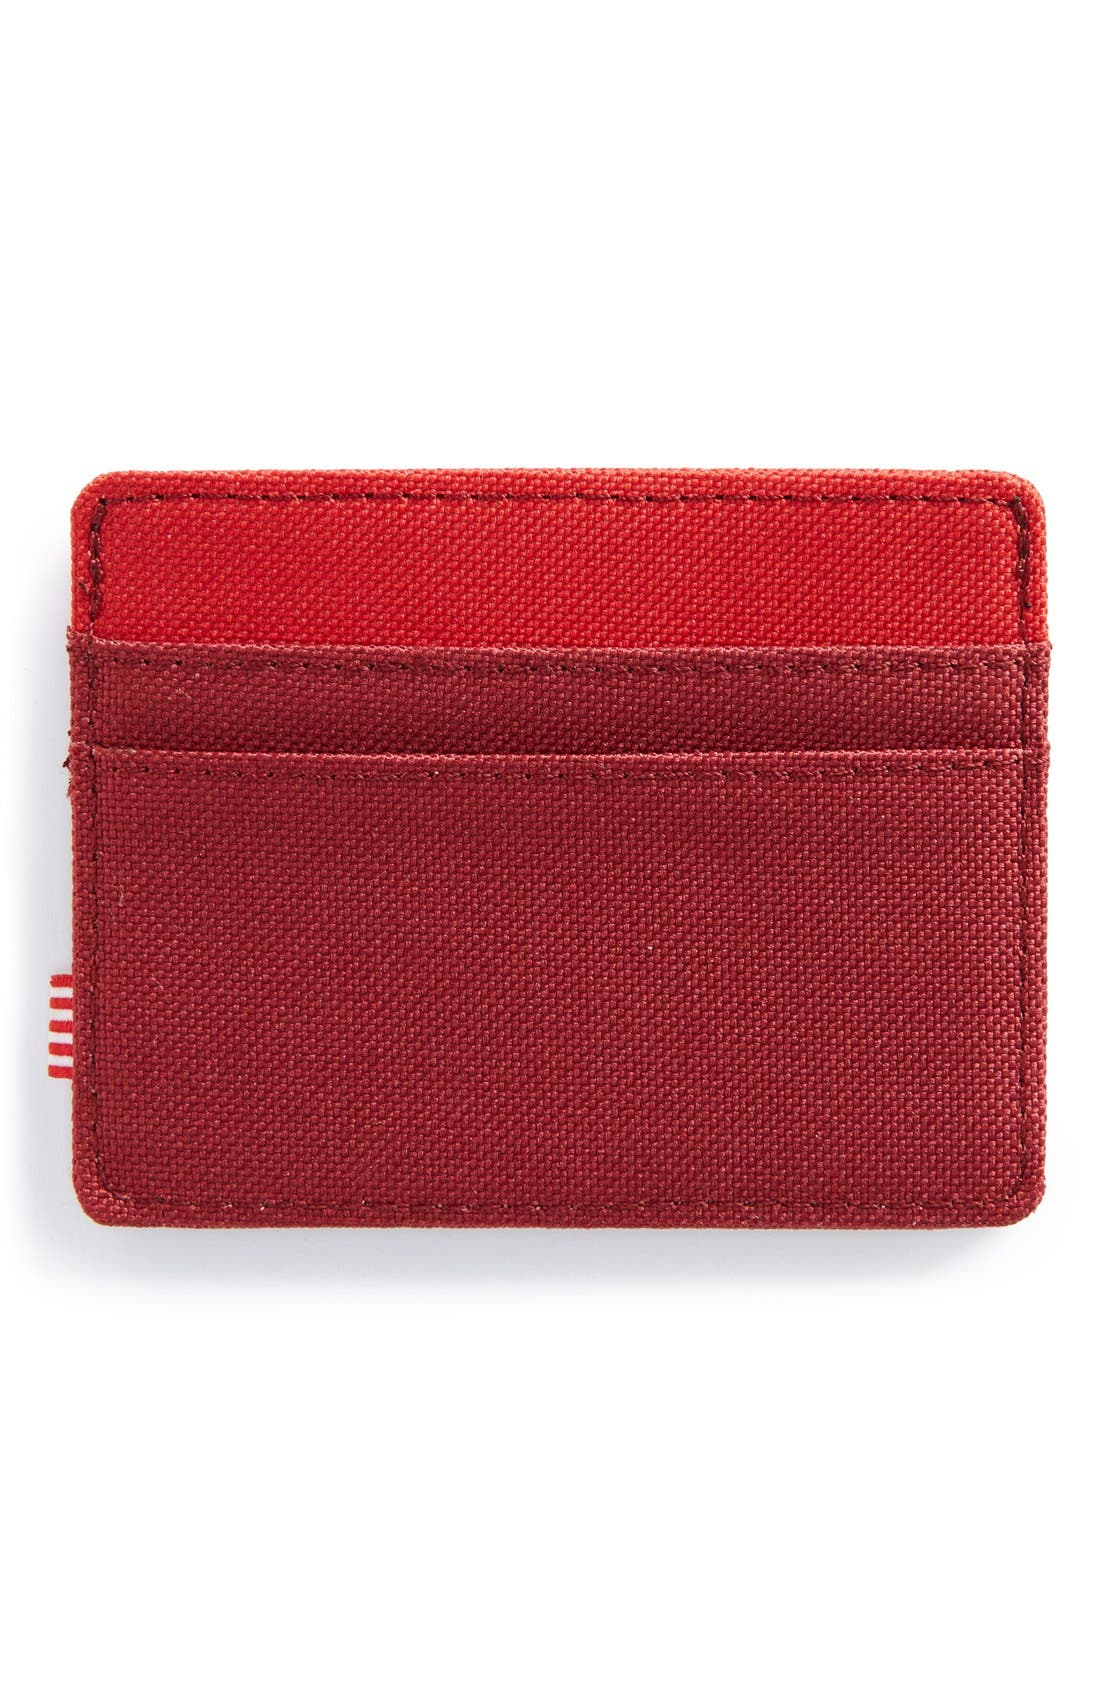 Alternate Image 2  - Herschel Supply Co. 'Charlie' Card Holder